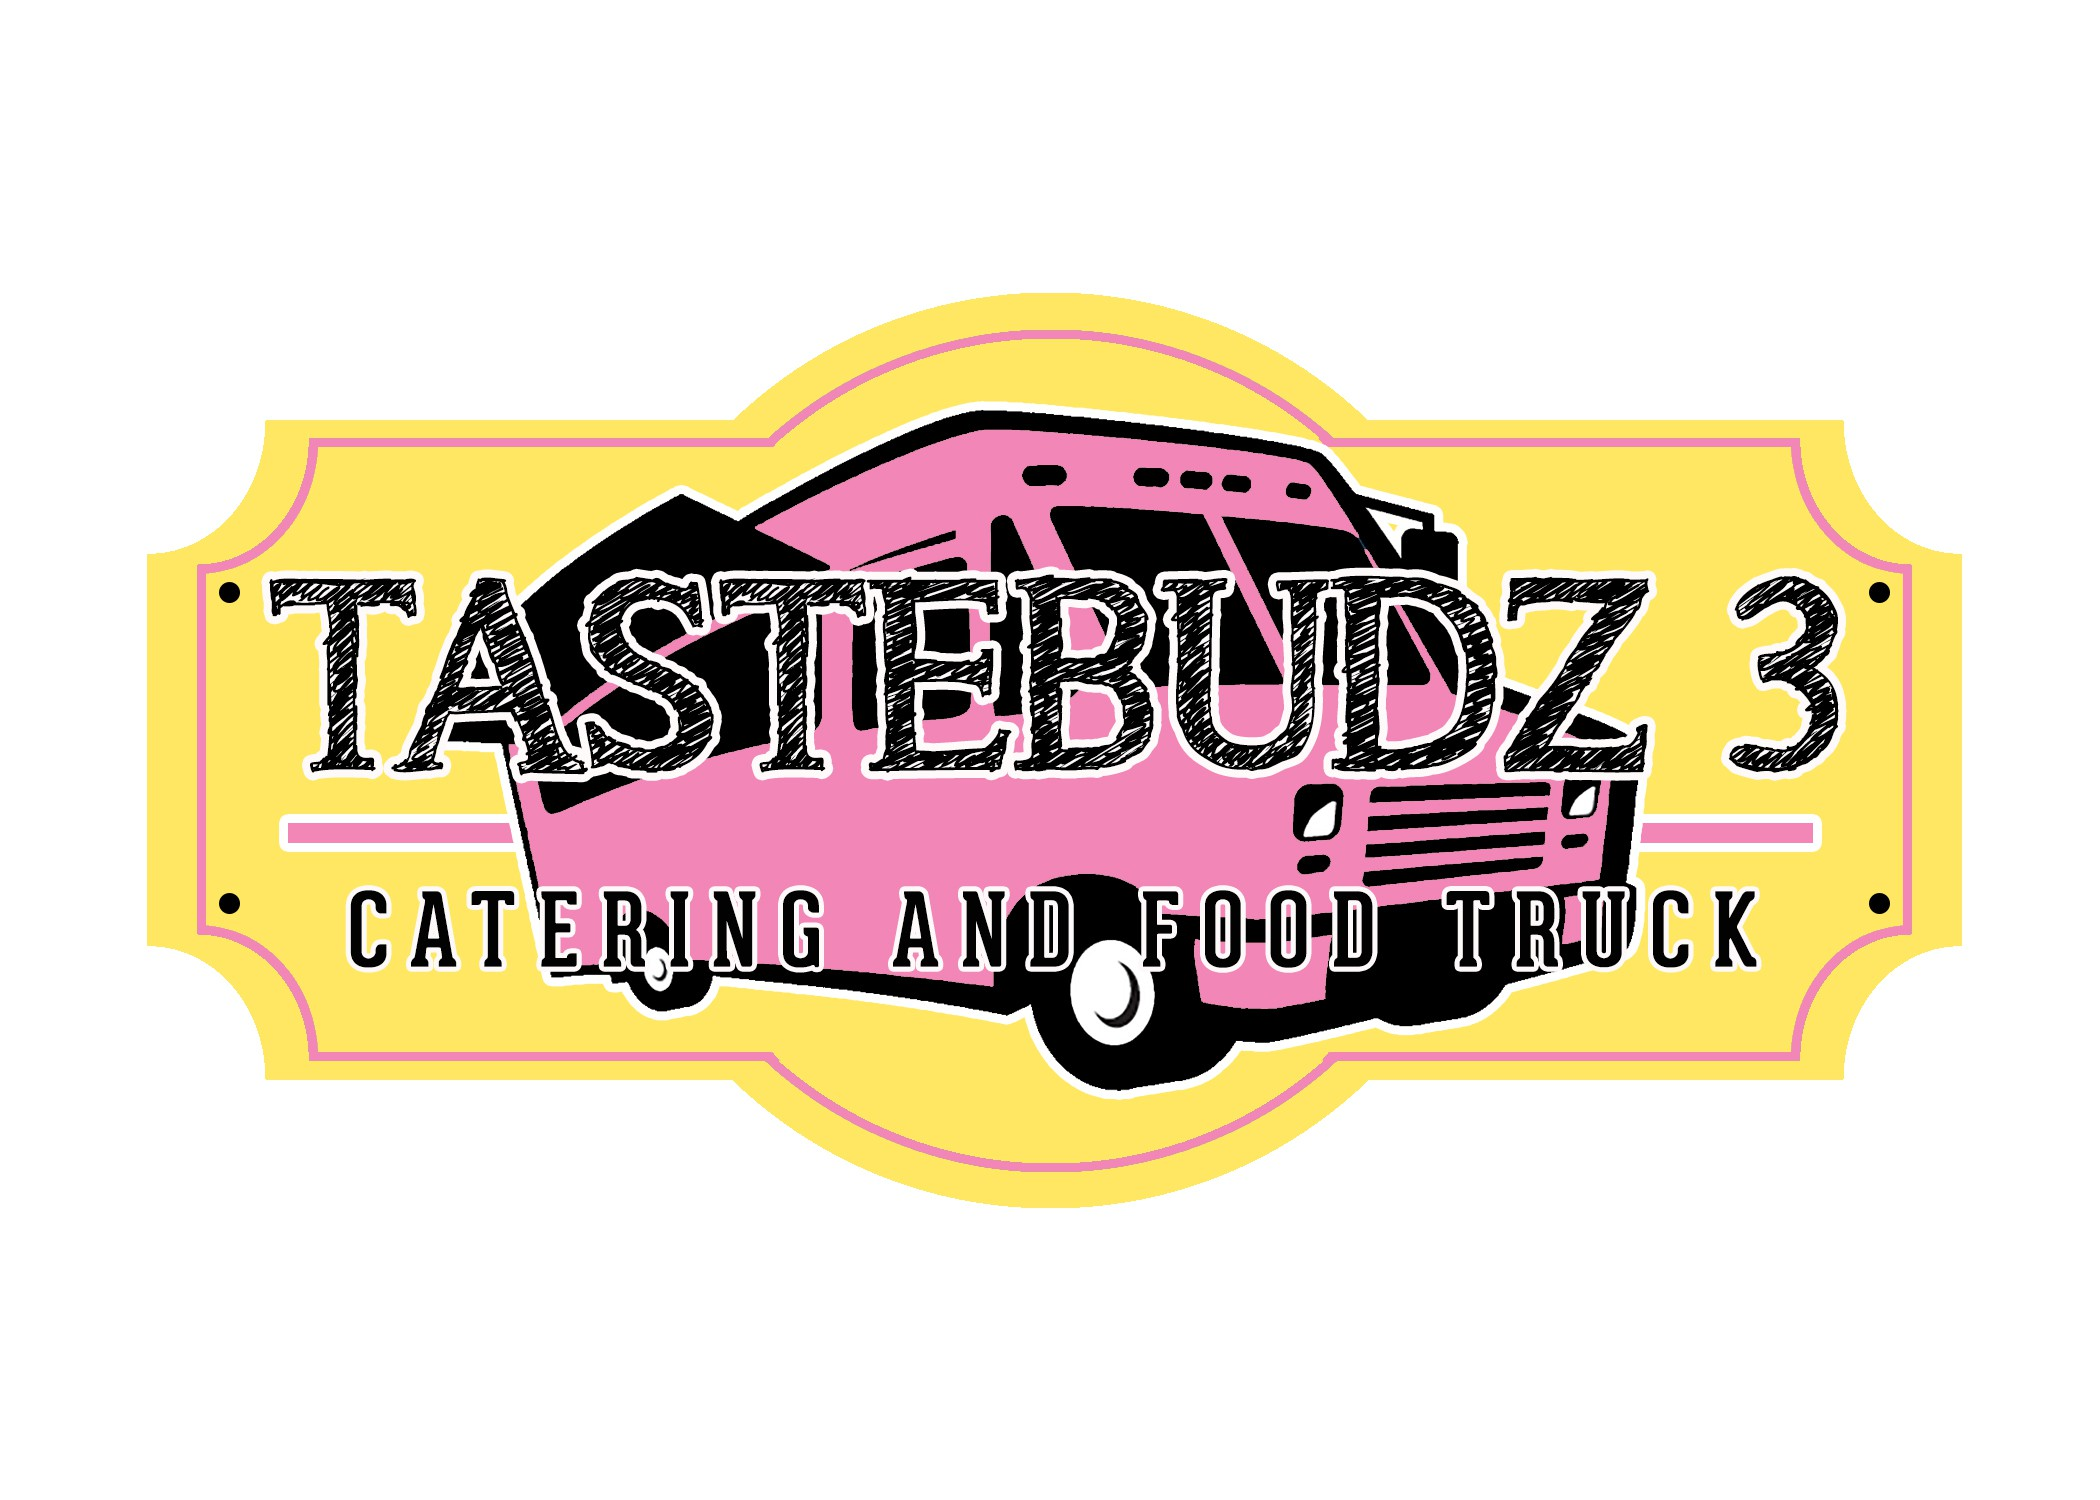 Taste Budz Event Catering and Food Truck